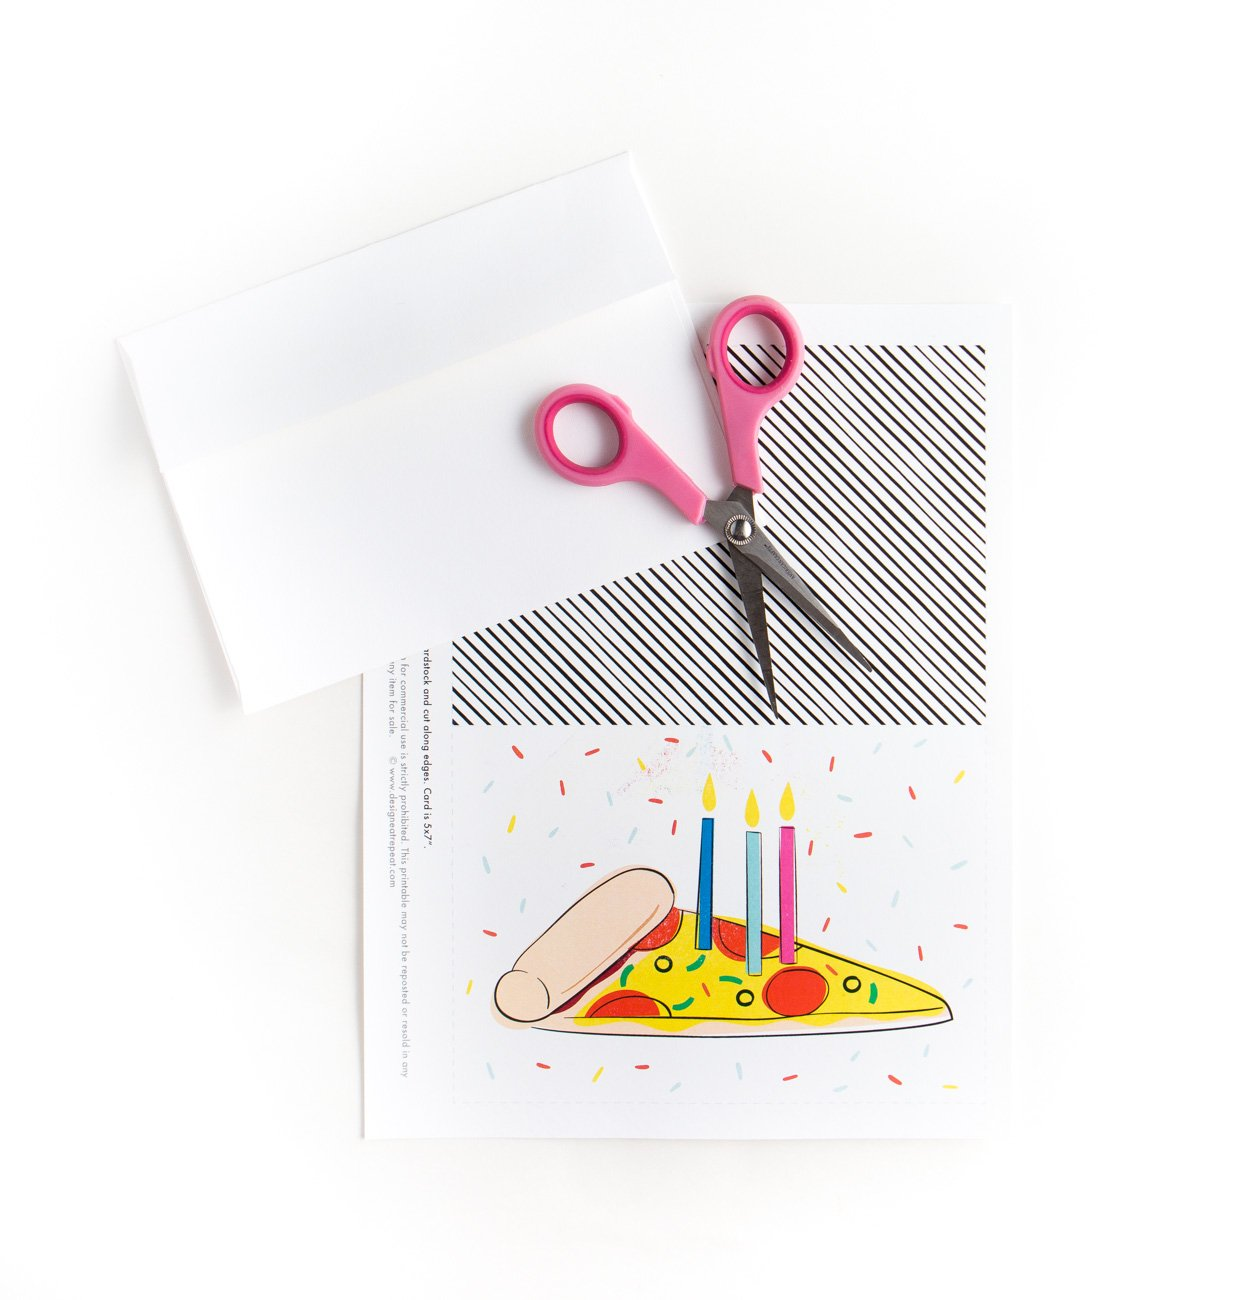 Printable birthday card with scissors. Colorful Pizza Printable Birthday Card with Candles and Sprinkles